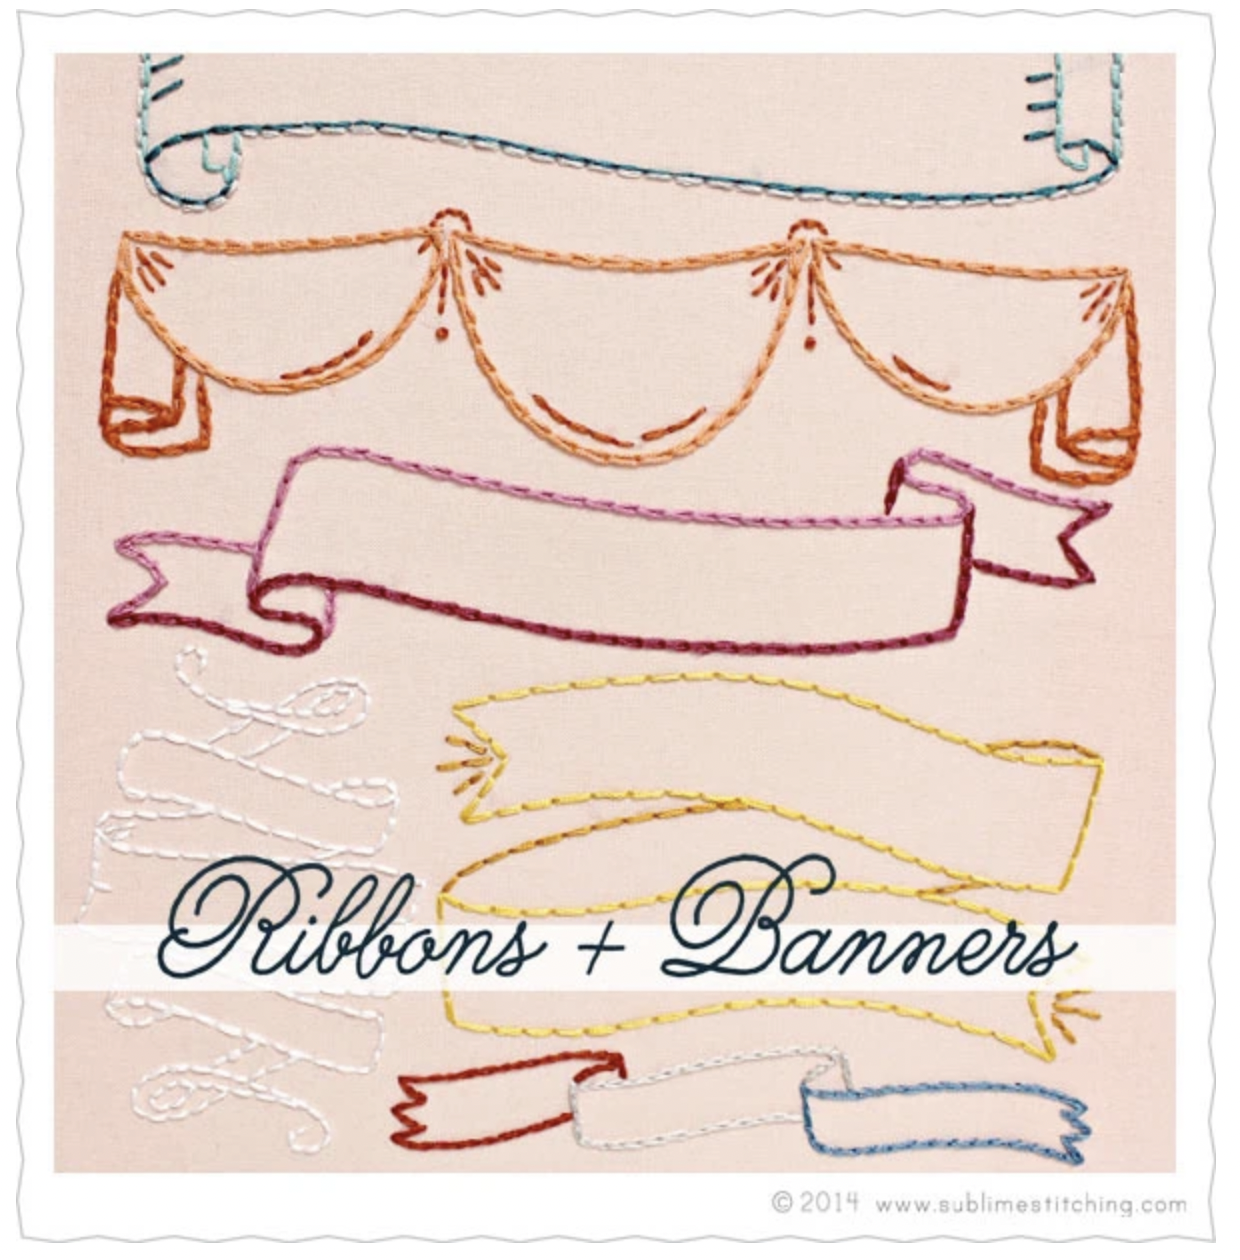 Embroidery Transfers - Ribbons and Banners